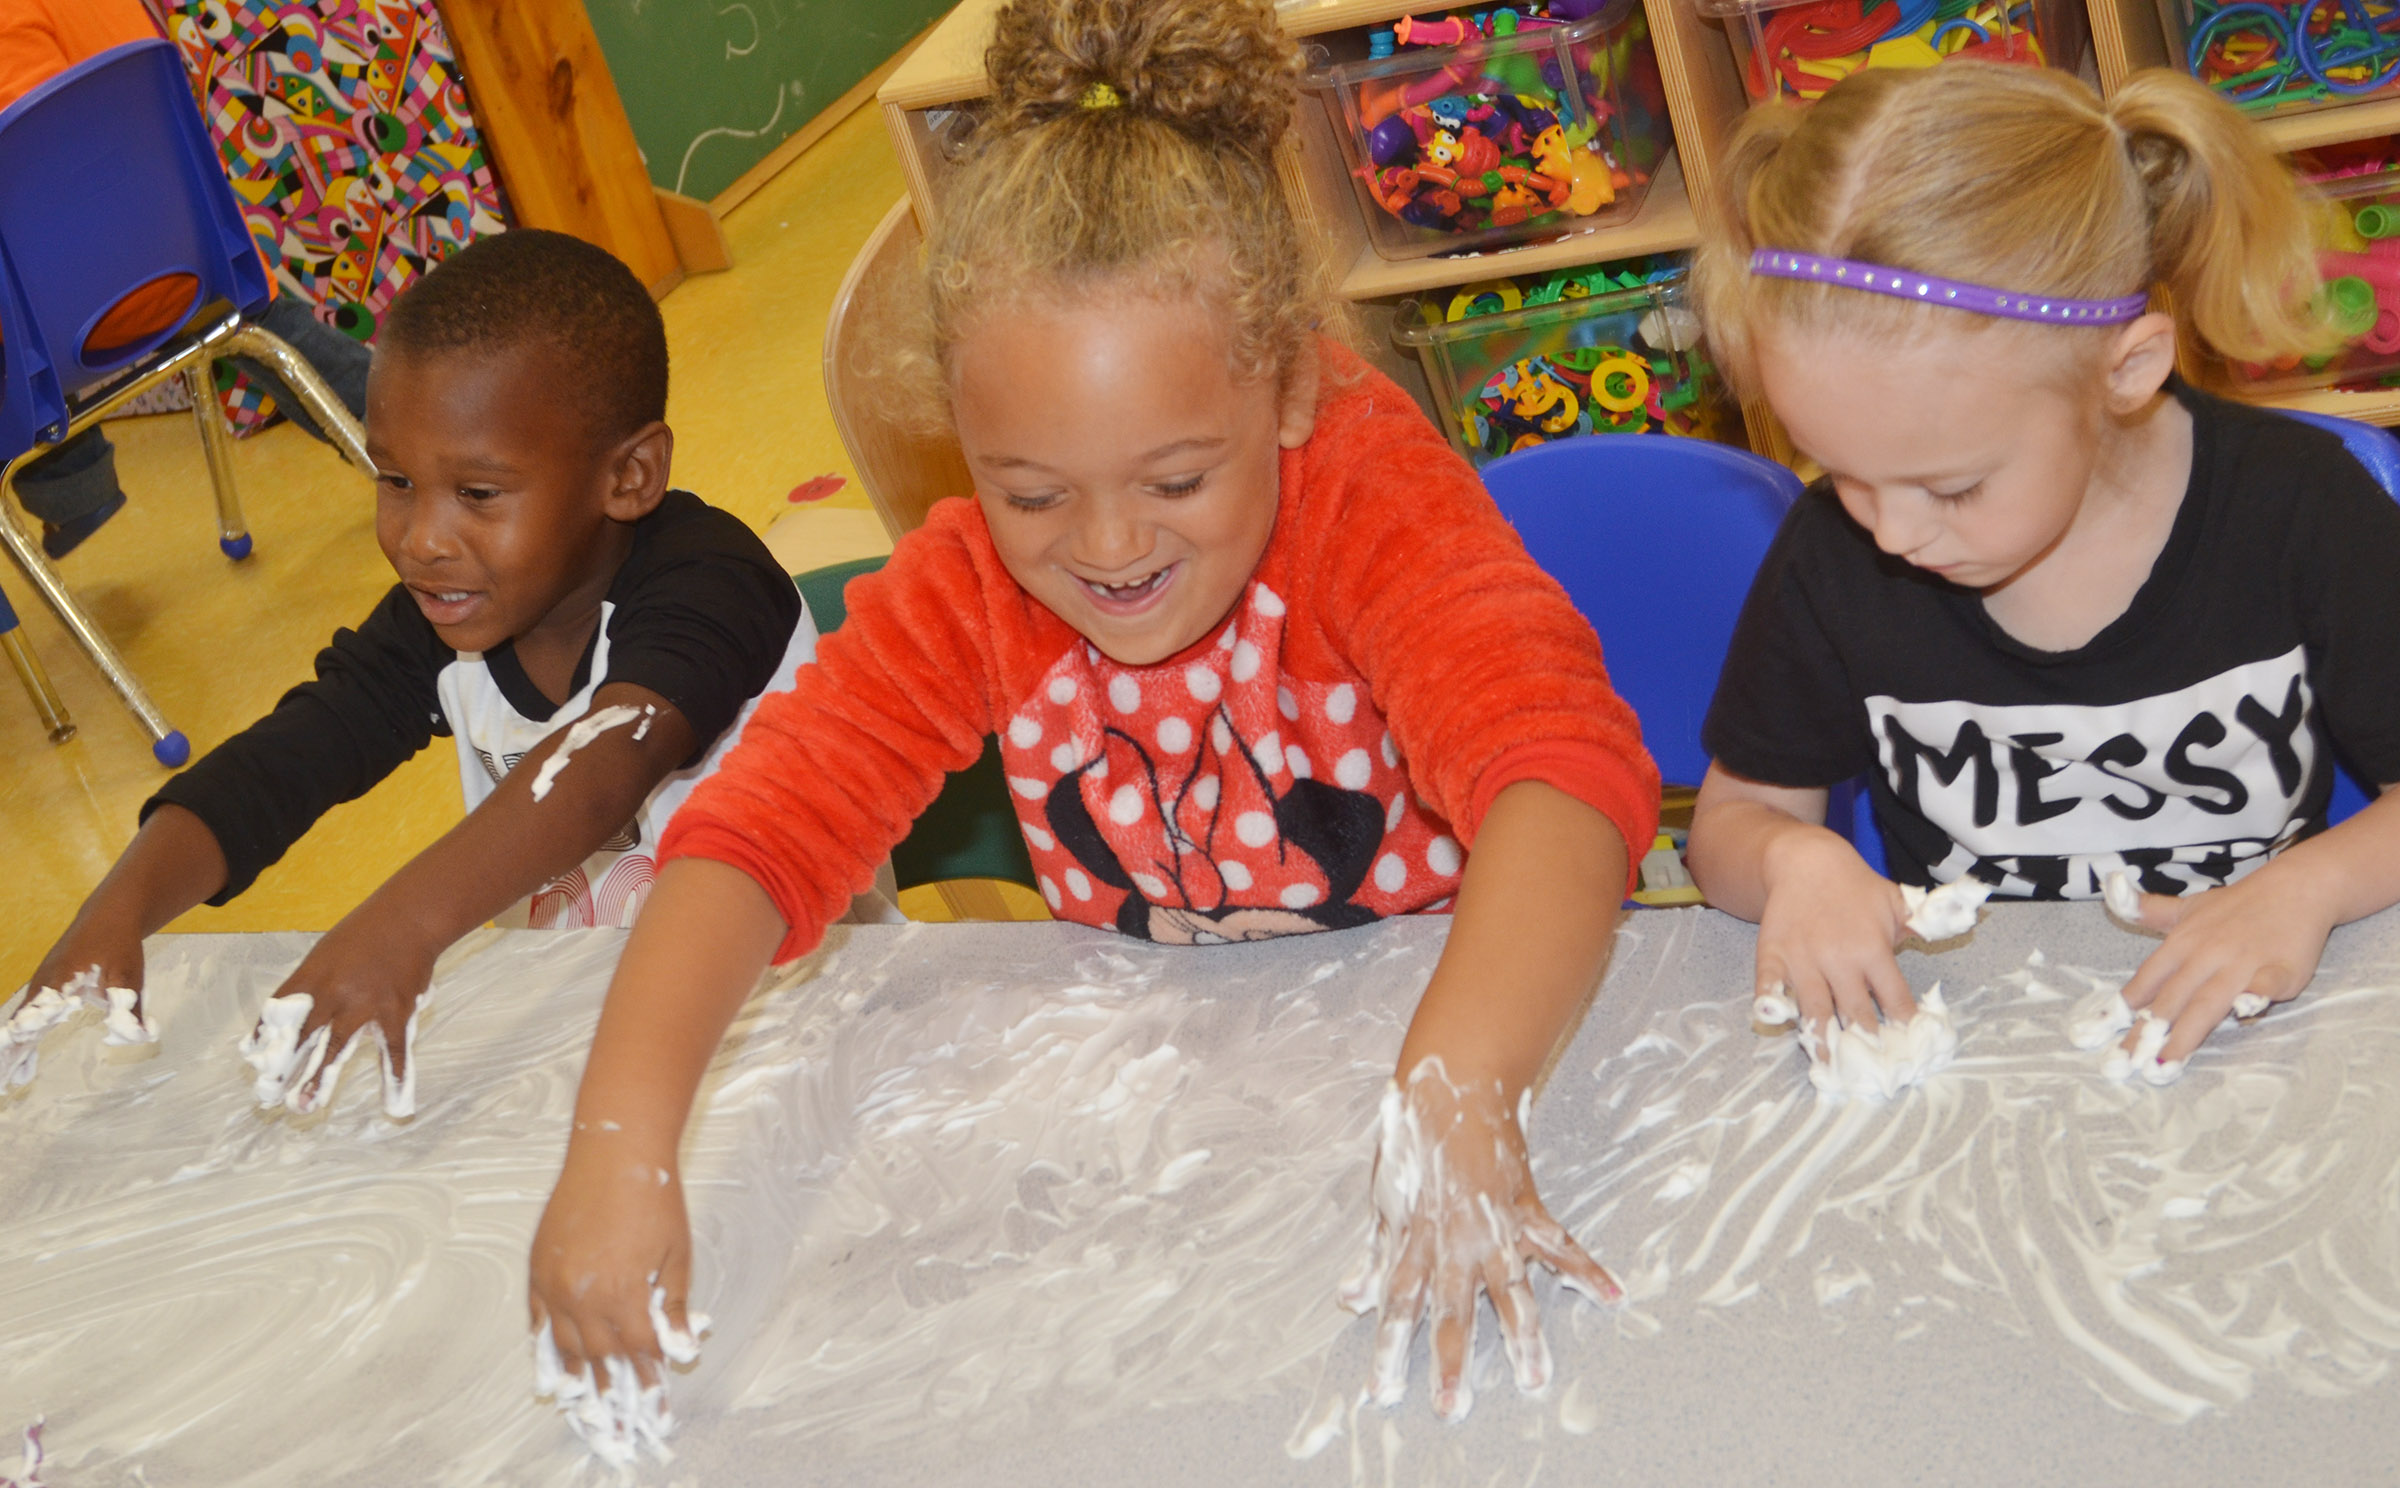 From left, CES preschool students Mason Conner, Layla Barbee and Kylie Thompson draw in their shaving cream.